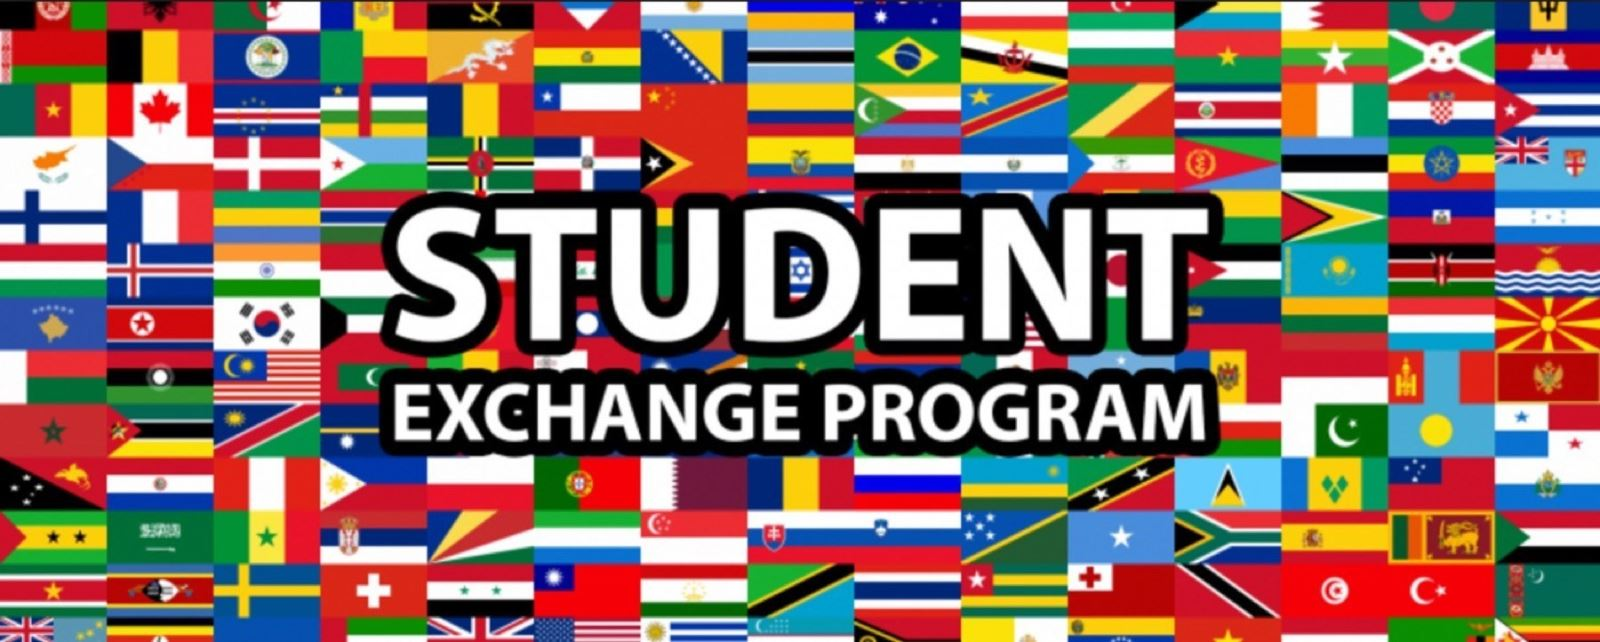 exchange programs for Pakistani students 2019  2020